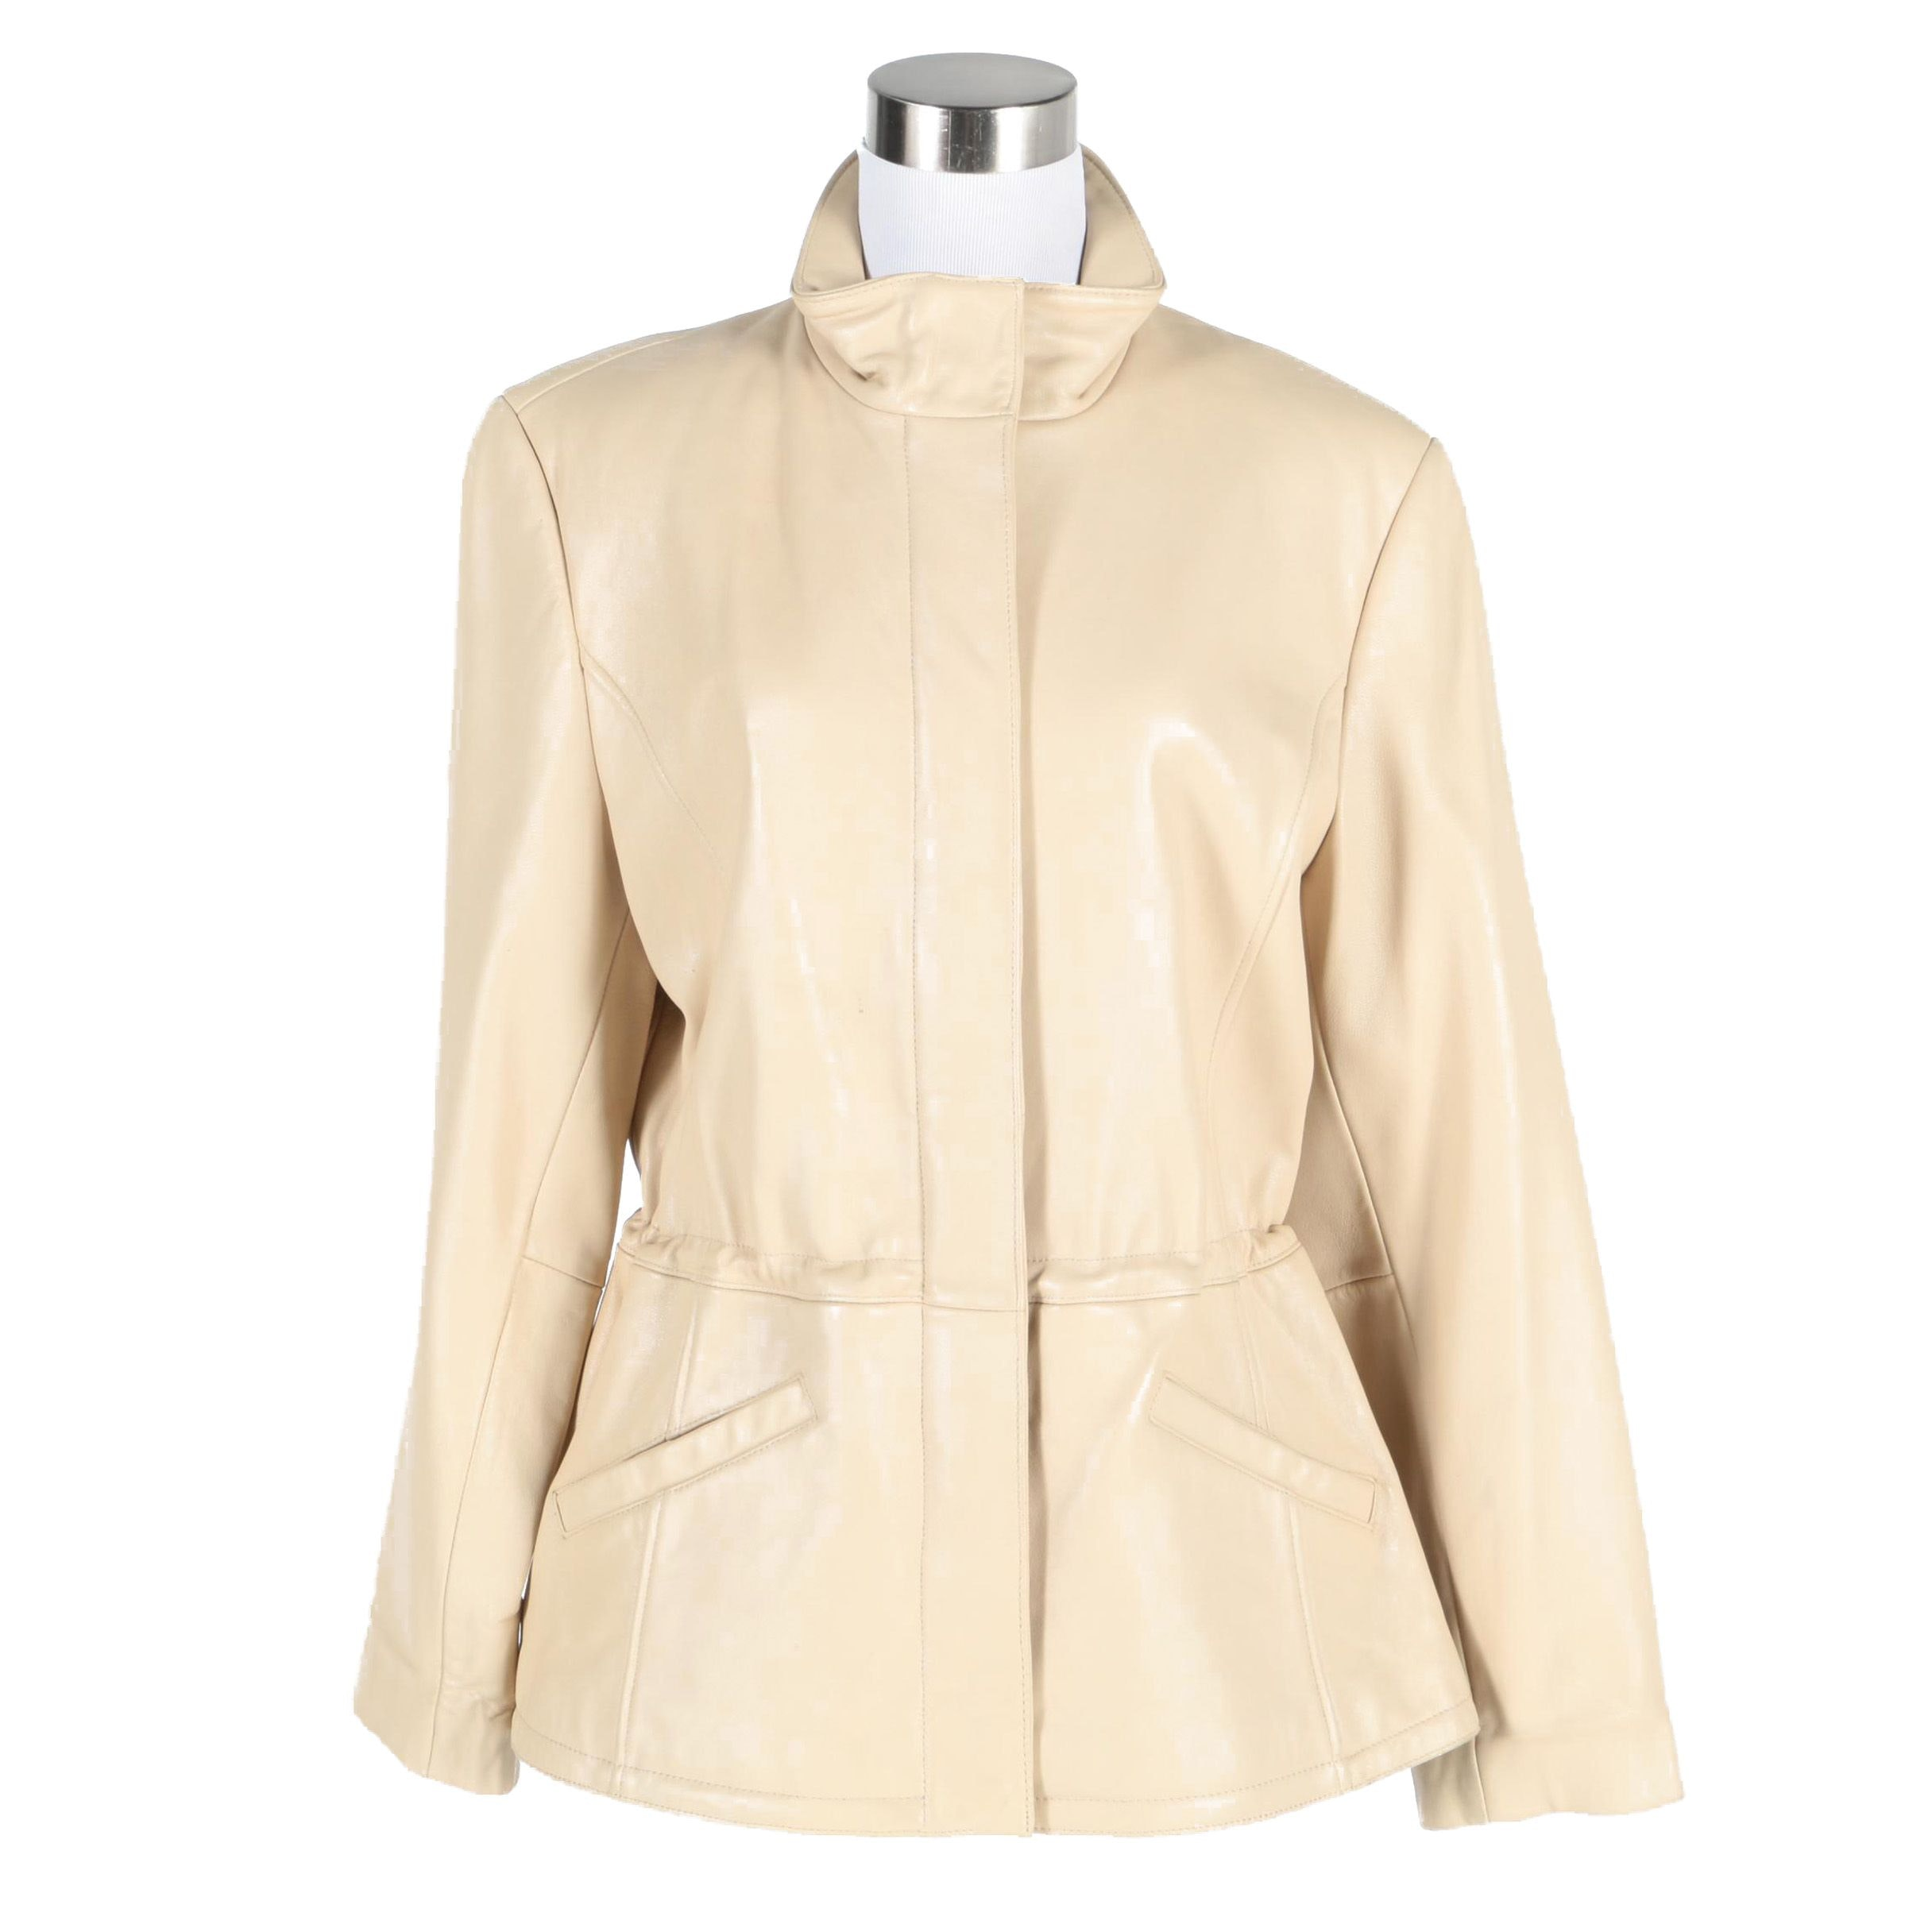 Liz Claiborne Cream Leather Jacket